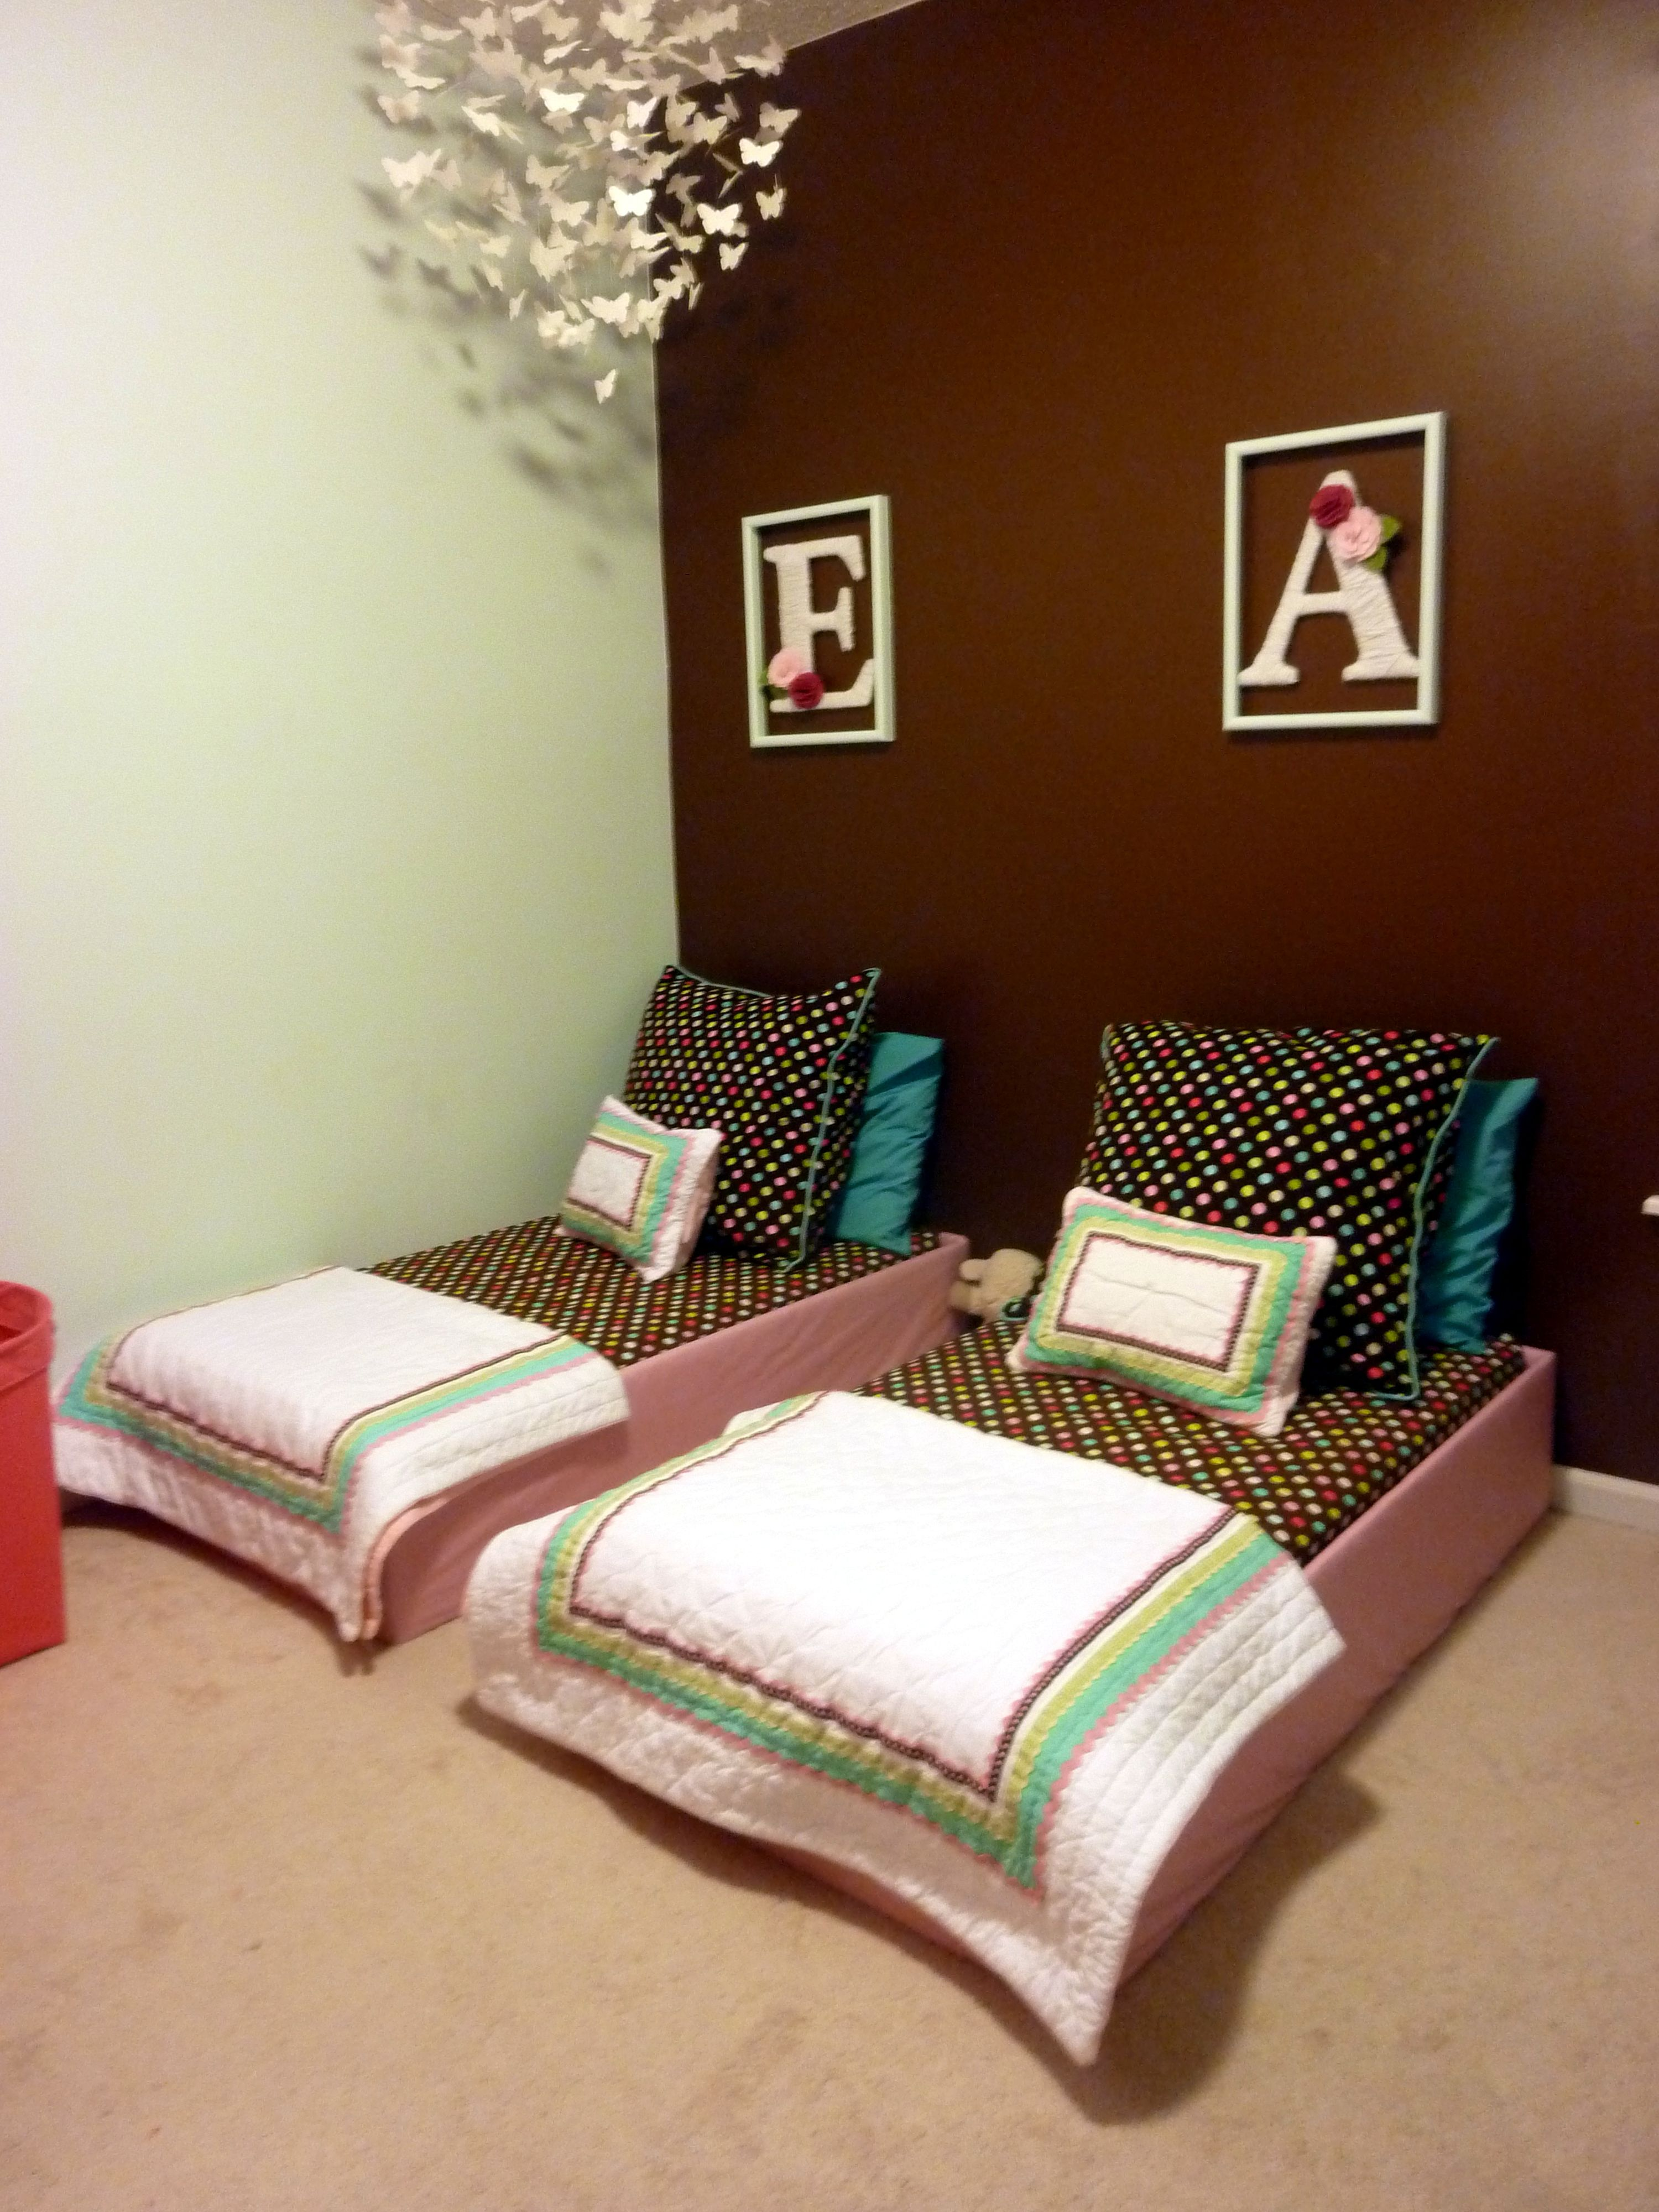 Toddler Beds   Diy toddler bed, Toddler rooms, Room on Cheap Bed Ideas  id=43775